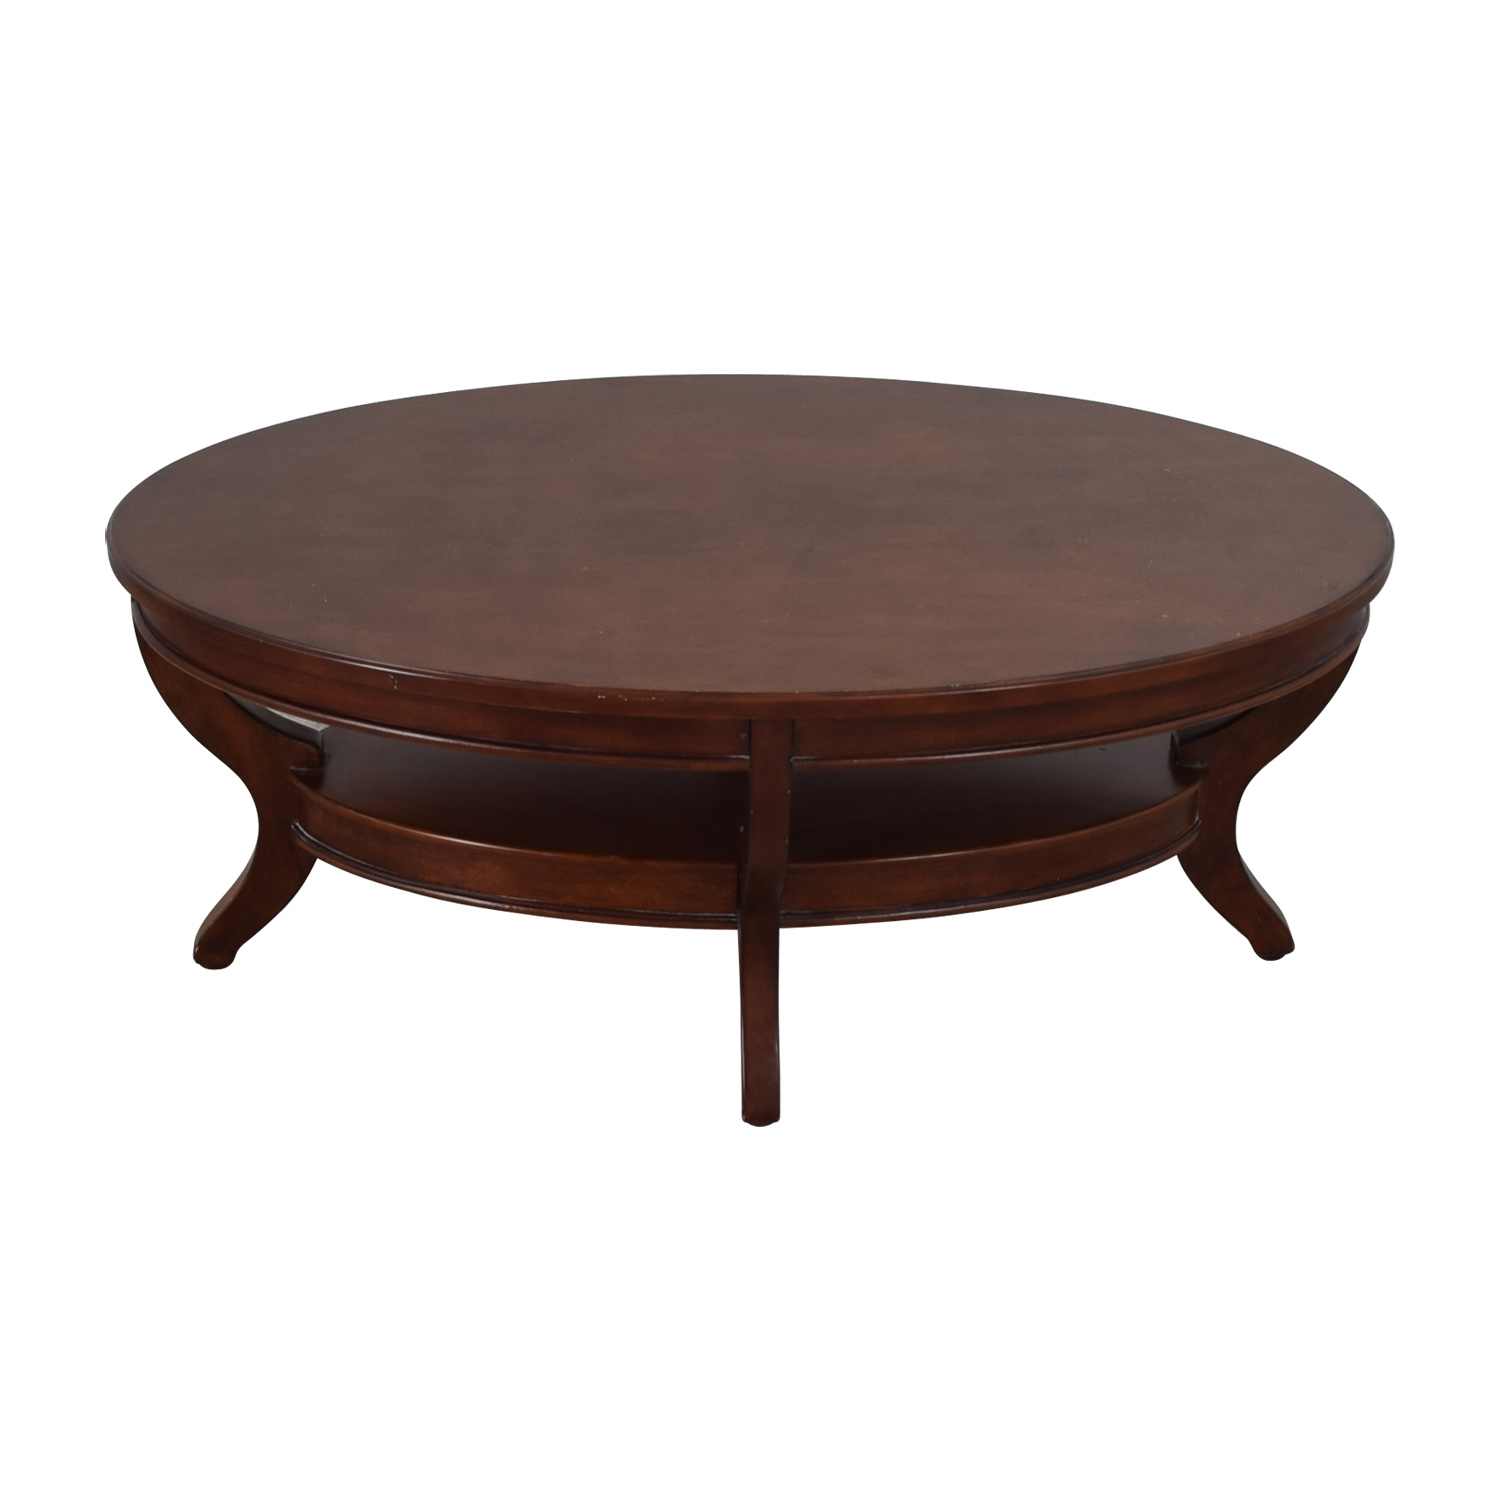 Homelegance Furniture Oval Wood Table with Shelf / Coffee Tables